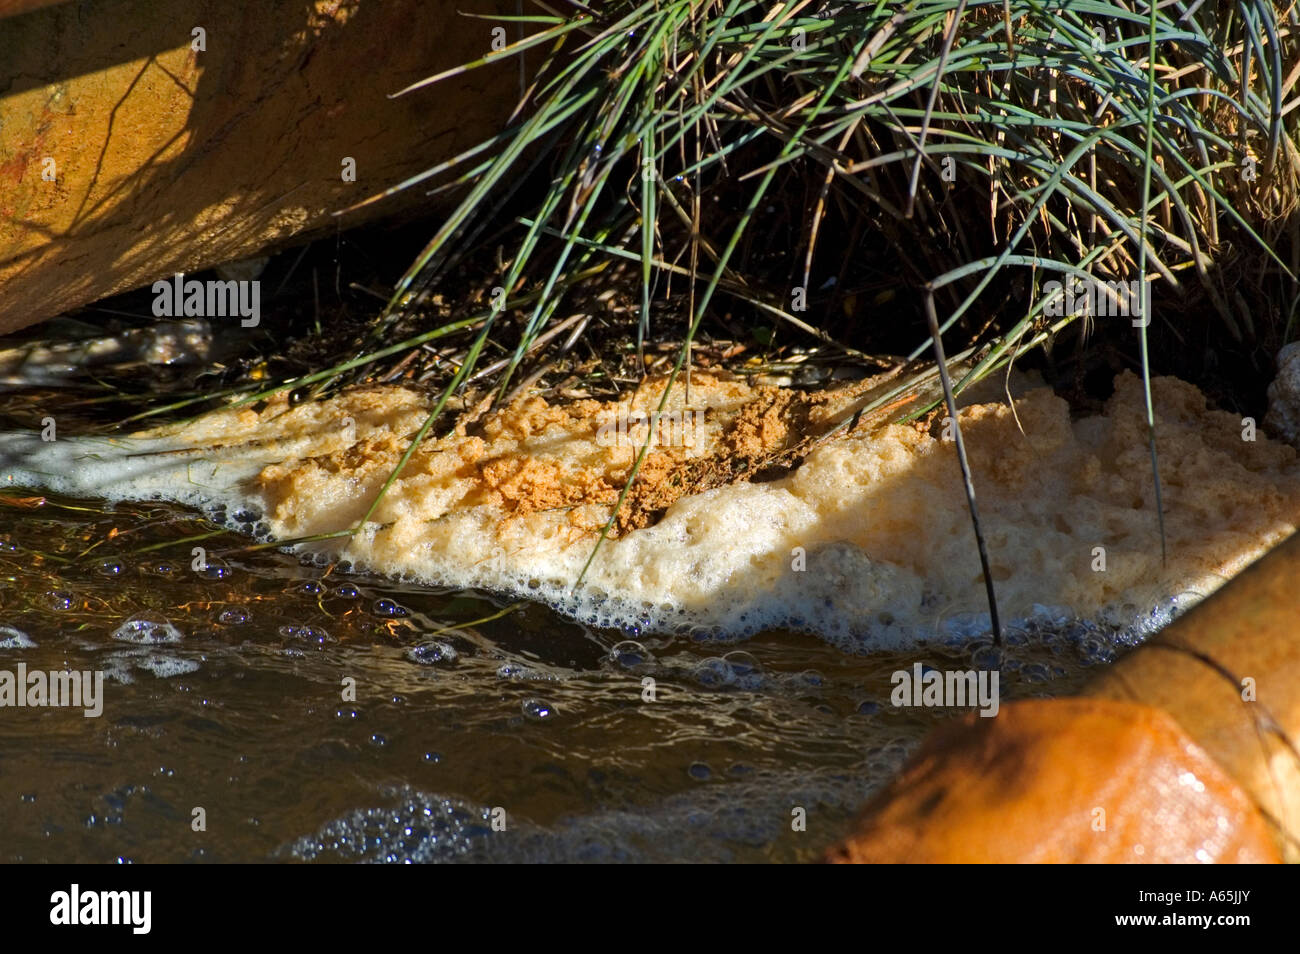 a polluted stream near redruth in cornwall,england - Stock Image